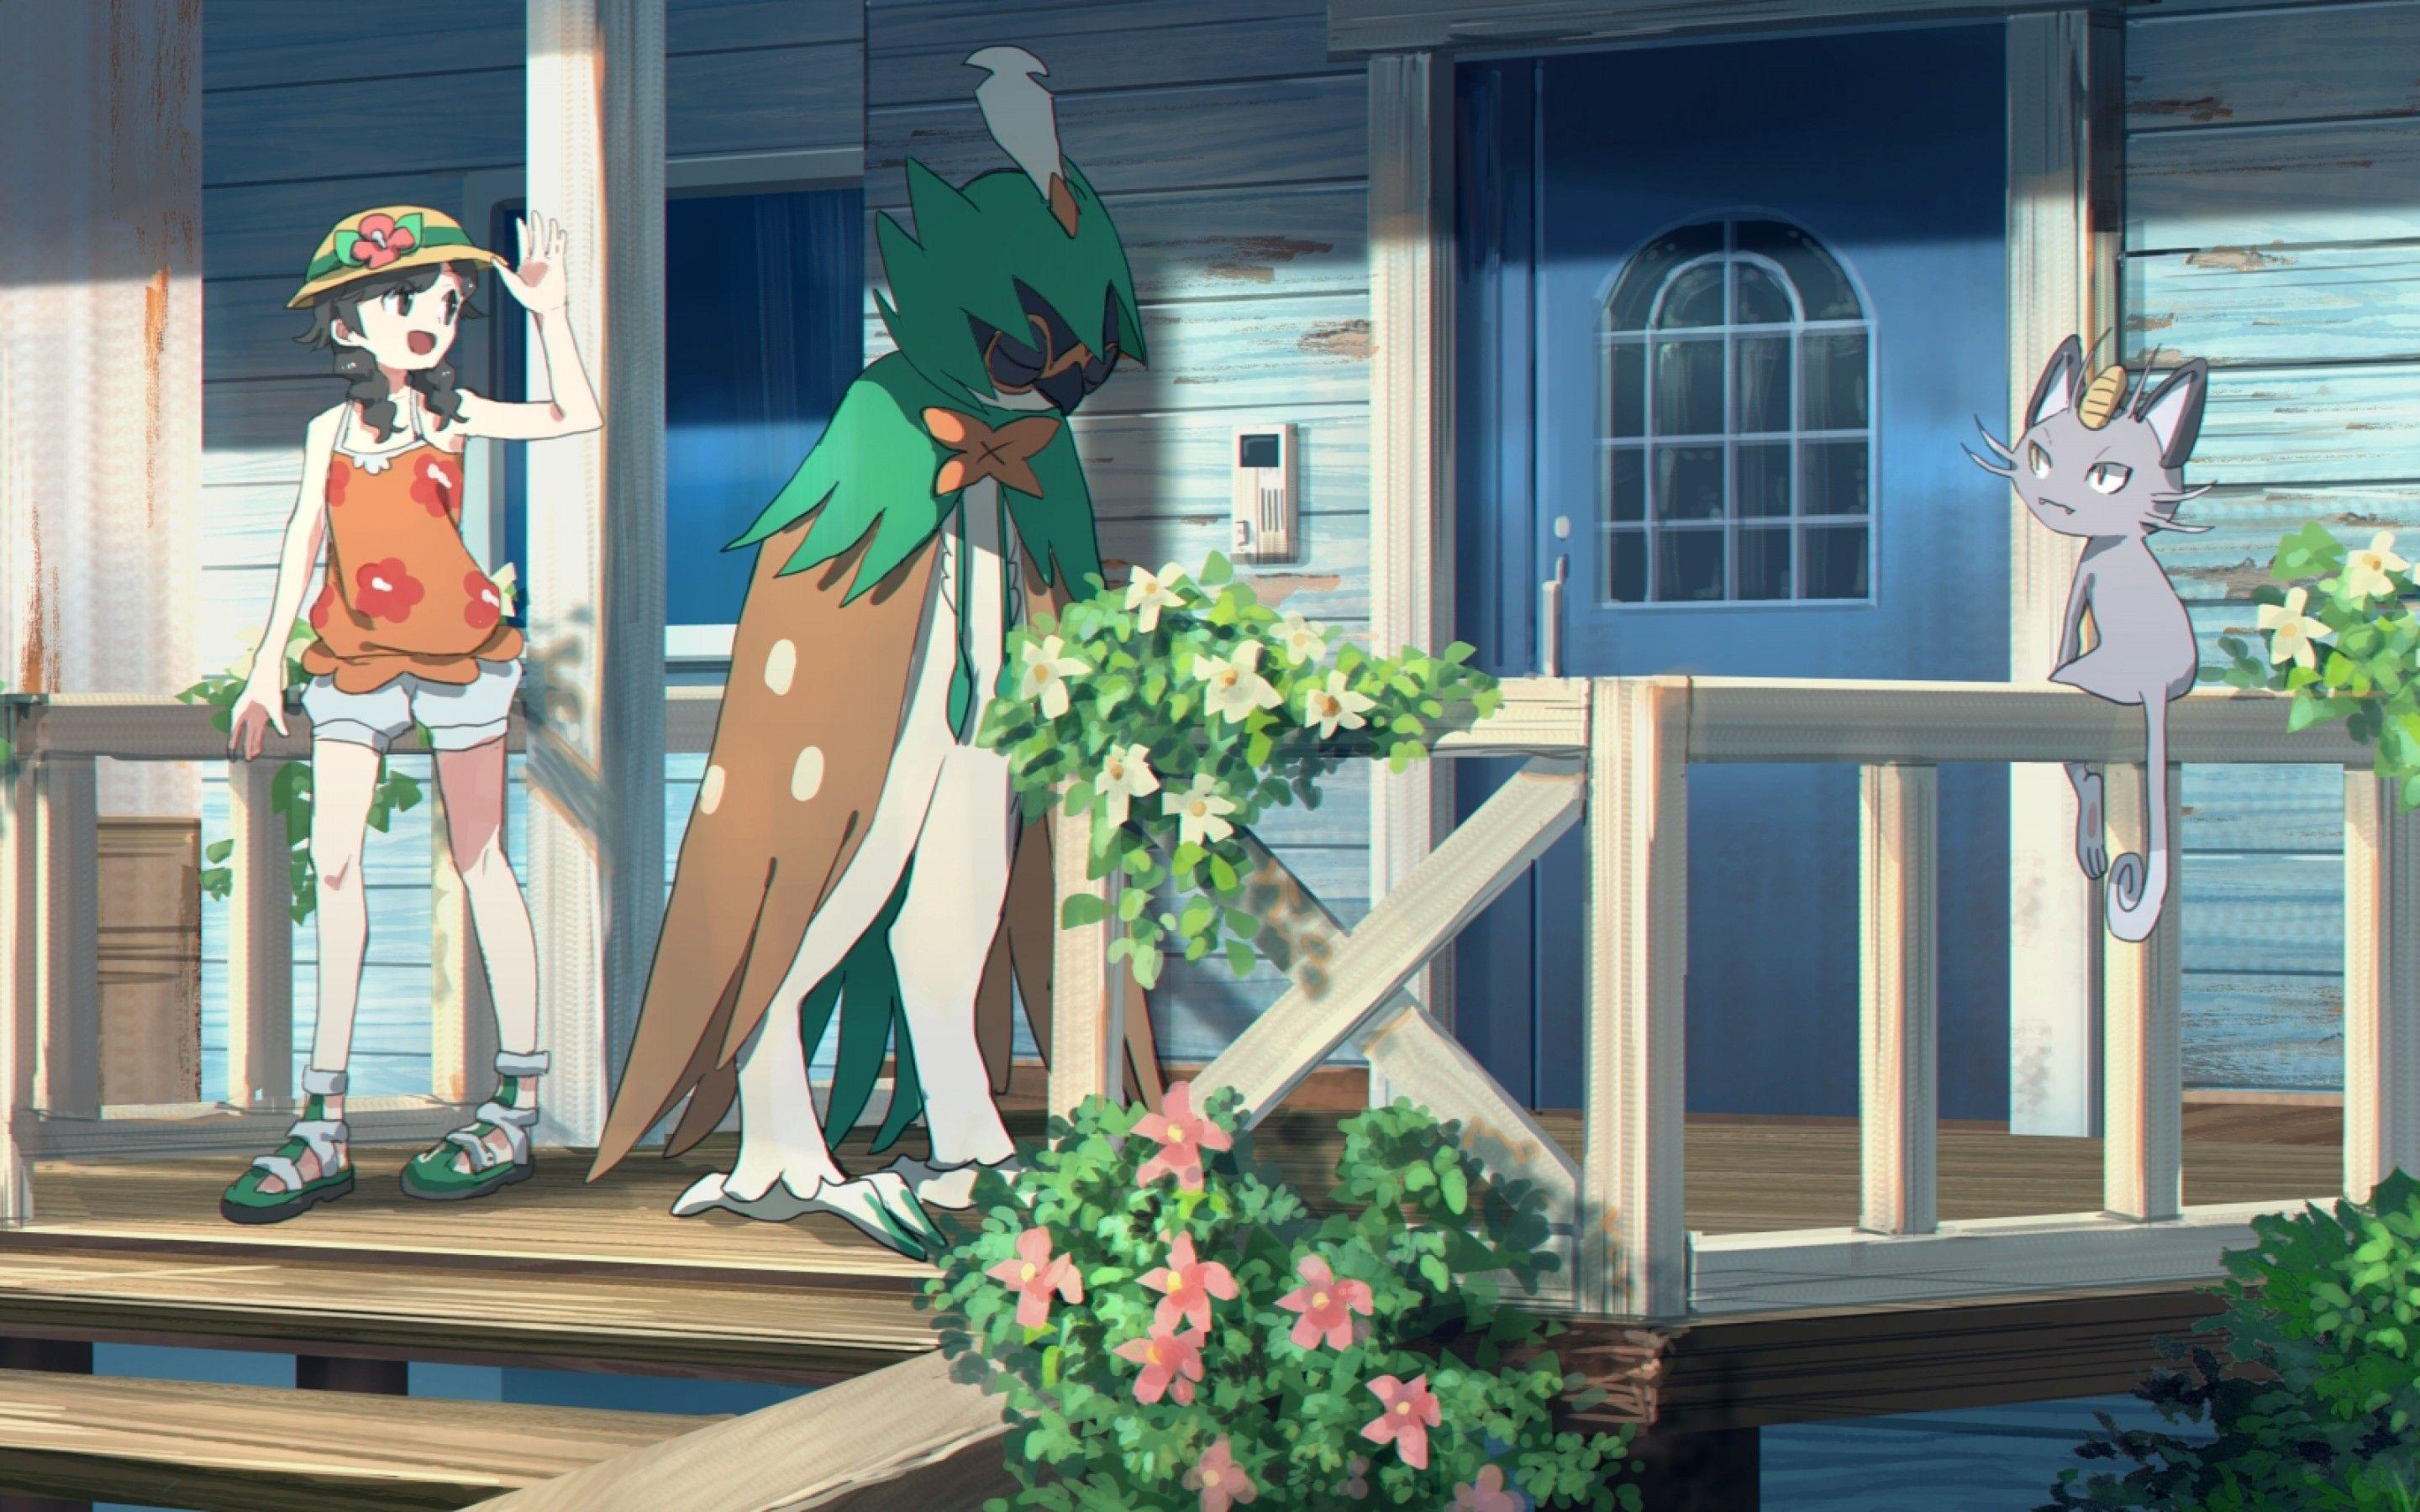 Download 2880x1800 Decidueye, Pokemon, House, Artwork Wallpapers for